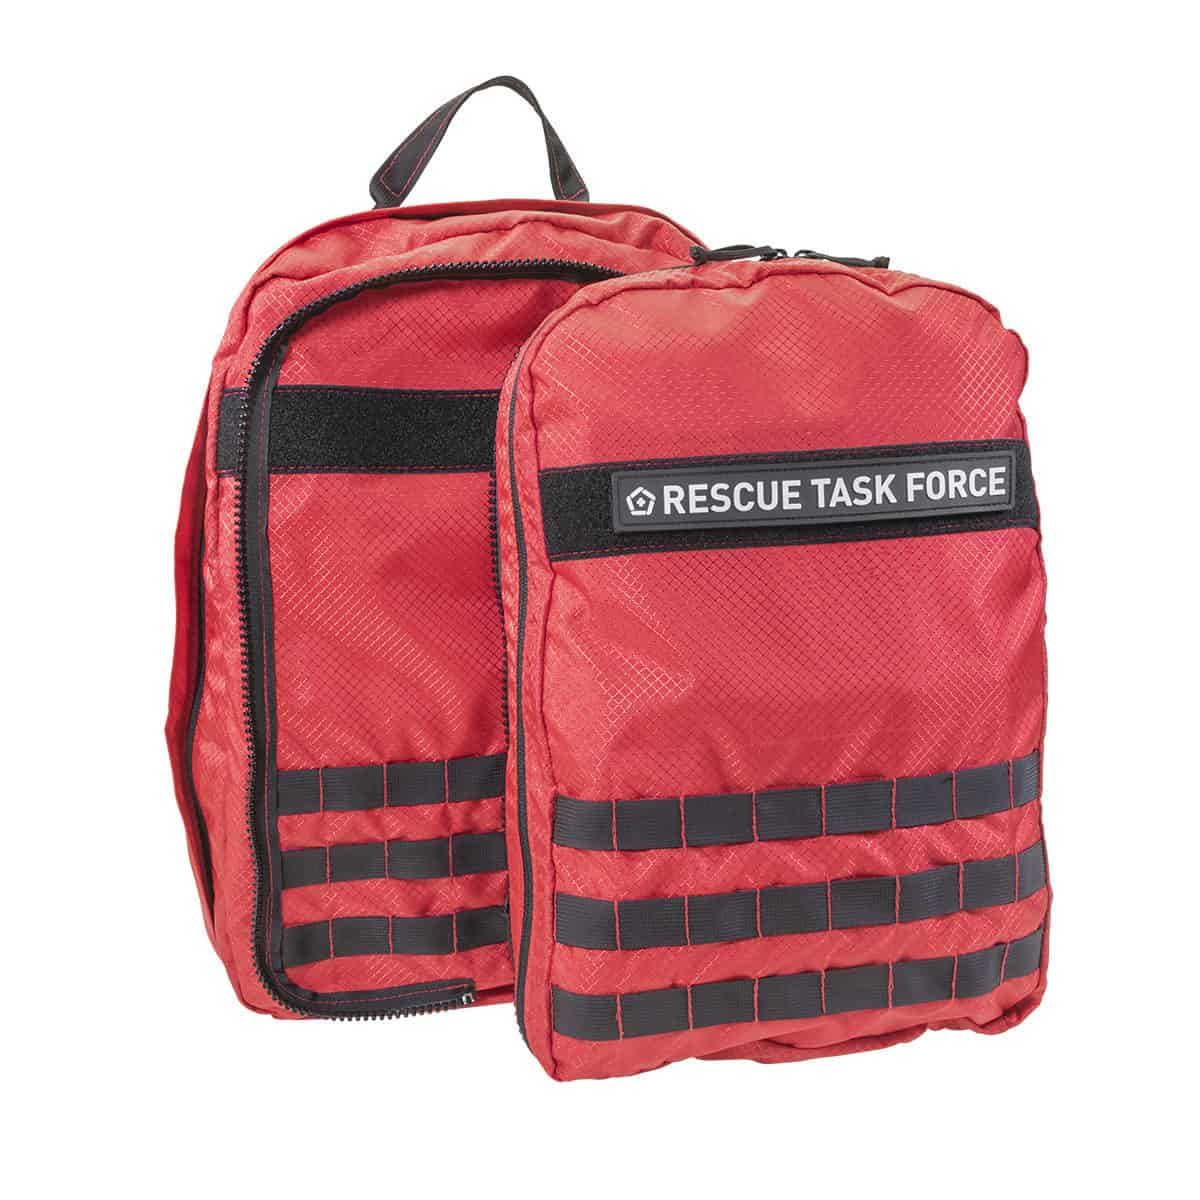 mojo rescue pack separated with patch closed front red